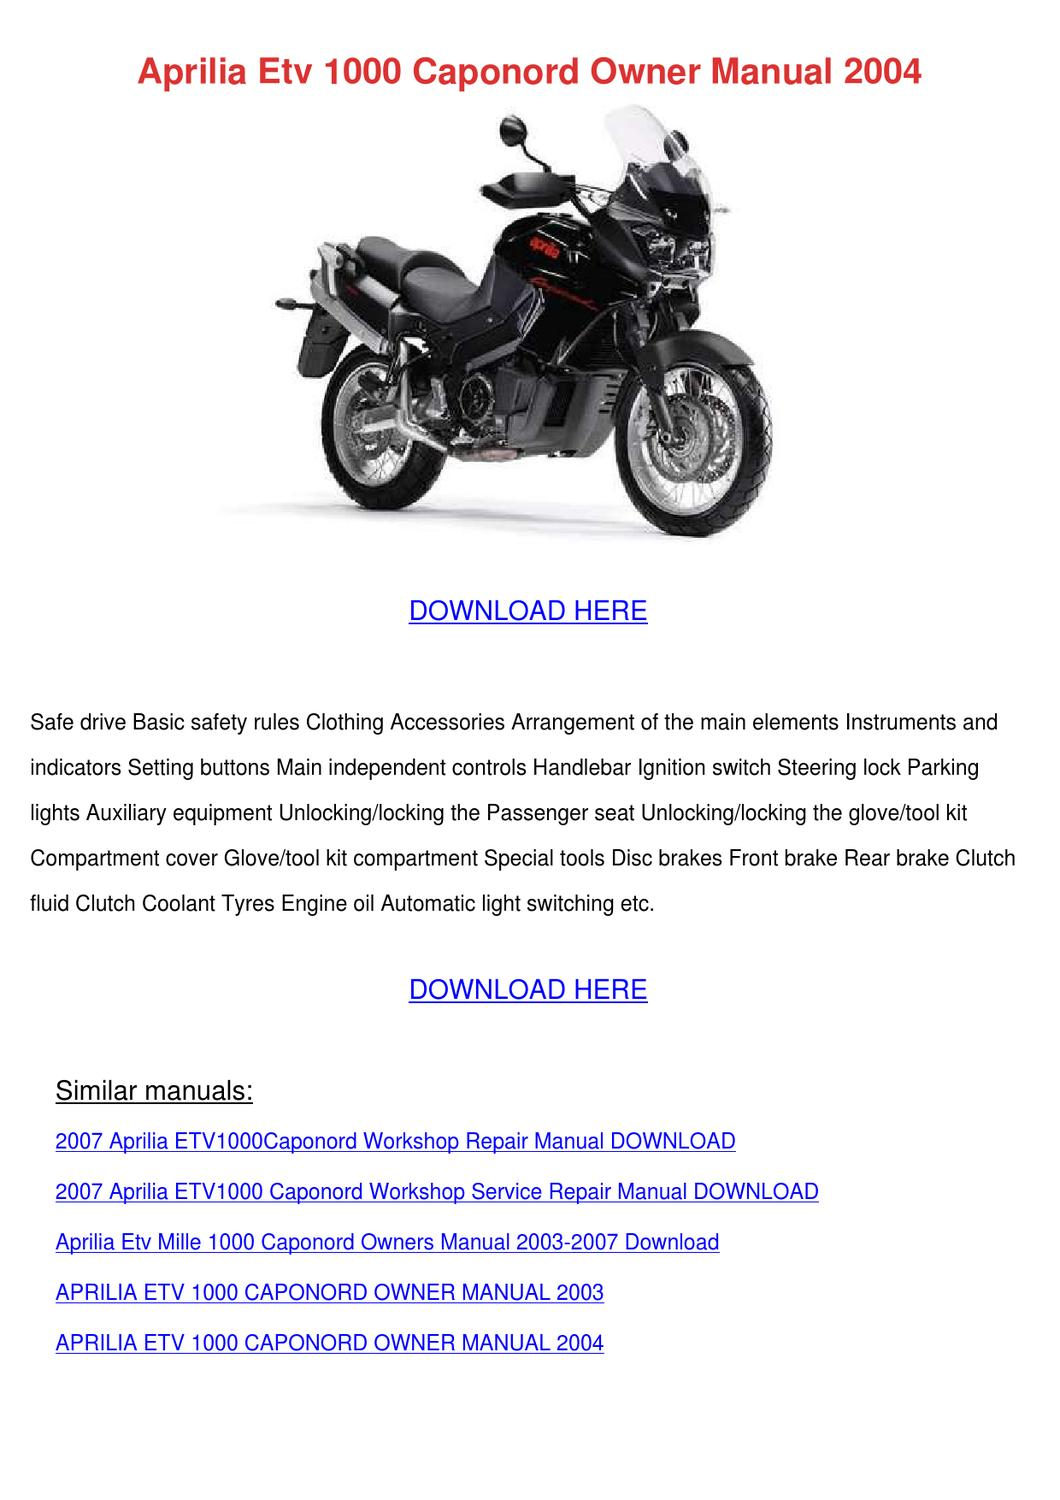 Aprilia Etv 1000 Caponord Owner Manual 2004 By Rustyreeve Issuu